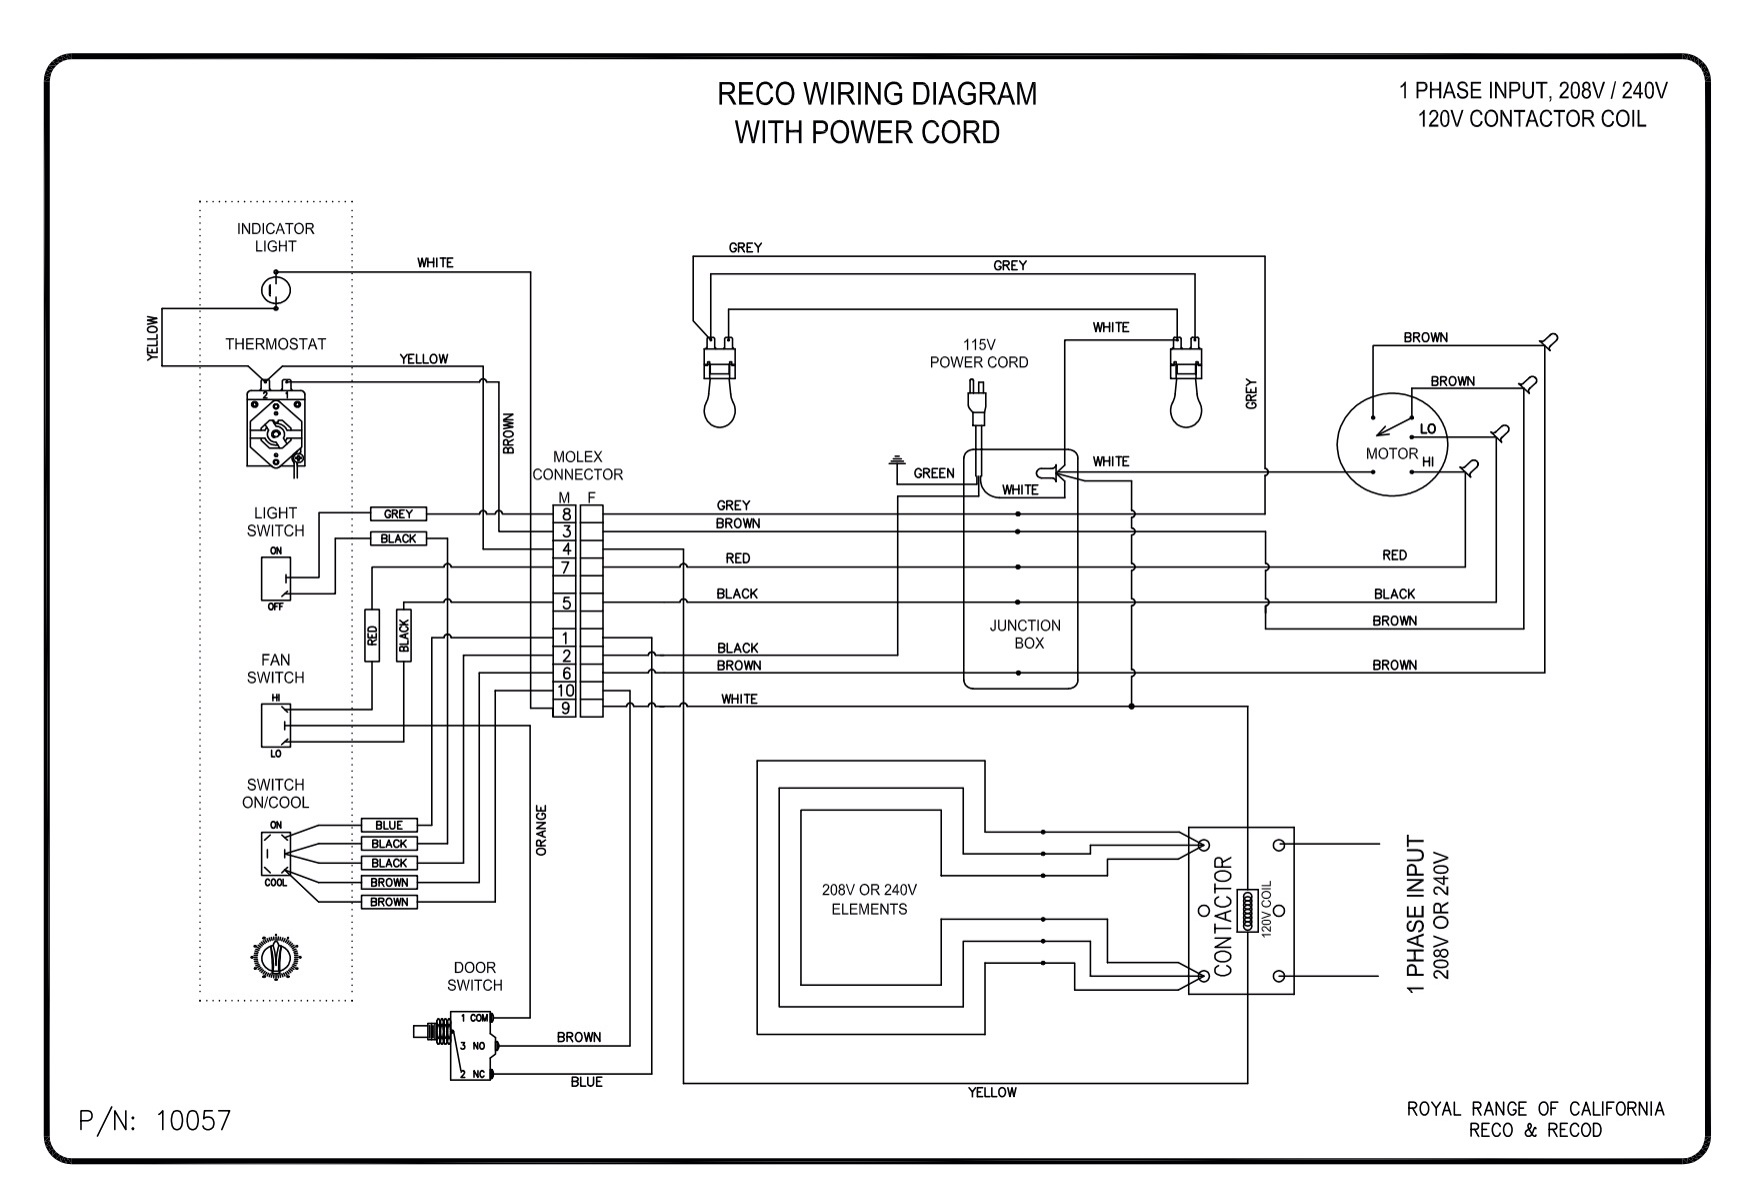 DIAGRAM] 3 Wire Stove Schematic Wiring Diagram FULL Version HD Quality Wiring  Diagram - DIAGRAMAEXPRESS.CONSERVATOIRE-CHANTERIE.FRdiagramaexpress.conservatoire-chanterie.fr